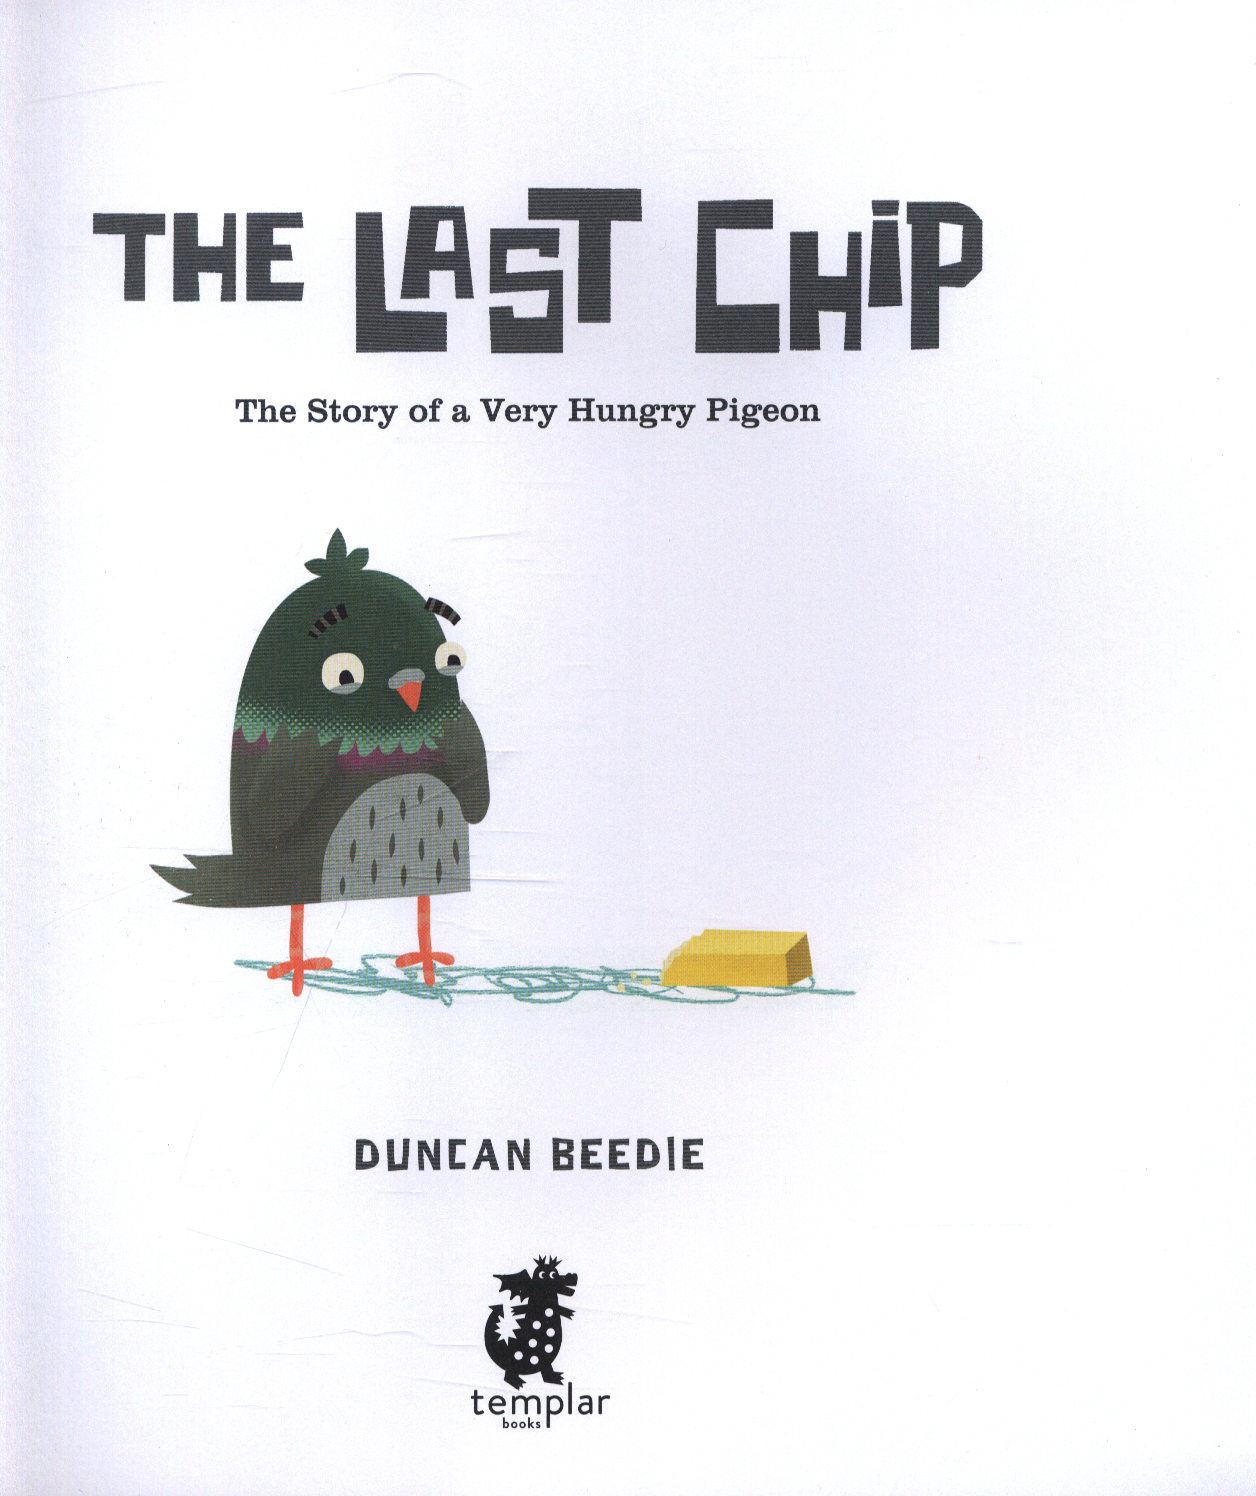 The last chip : the story of a very hungry pigeon by BEEDIE